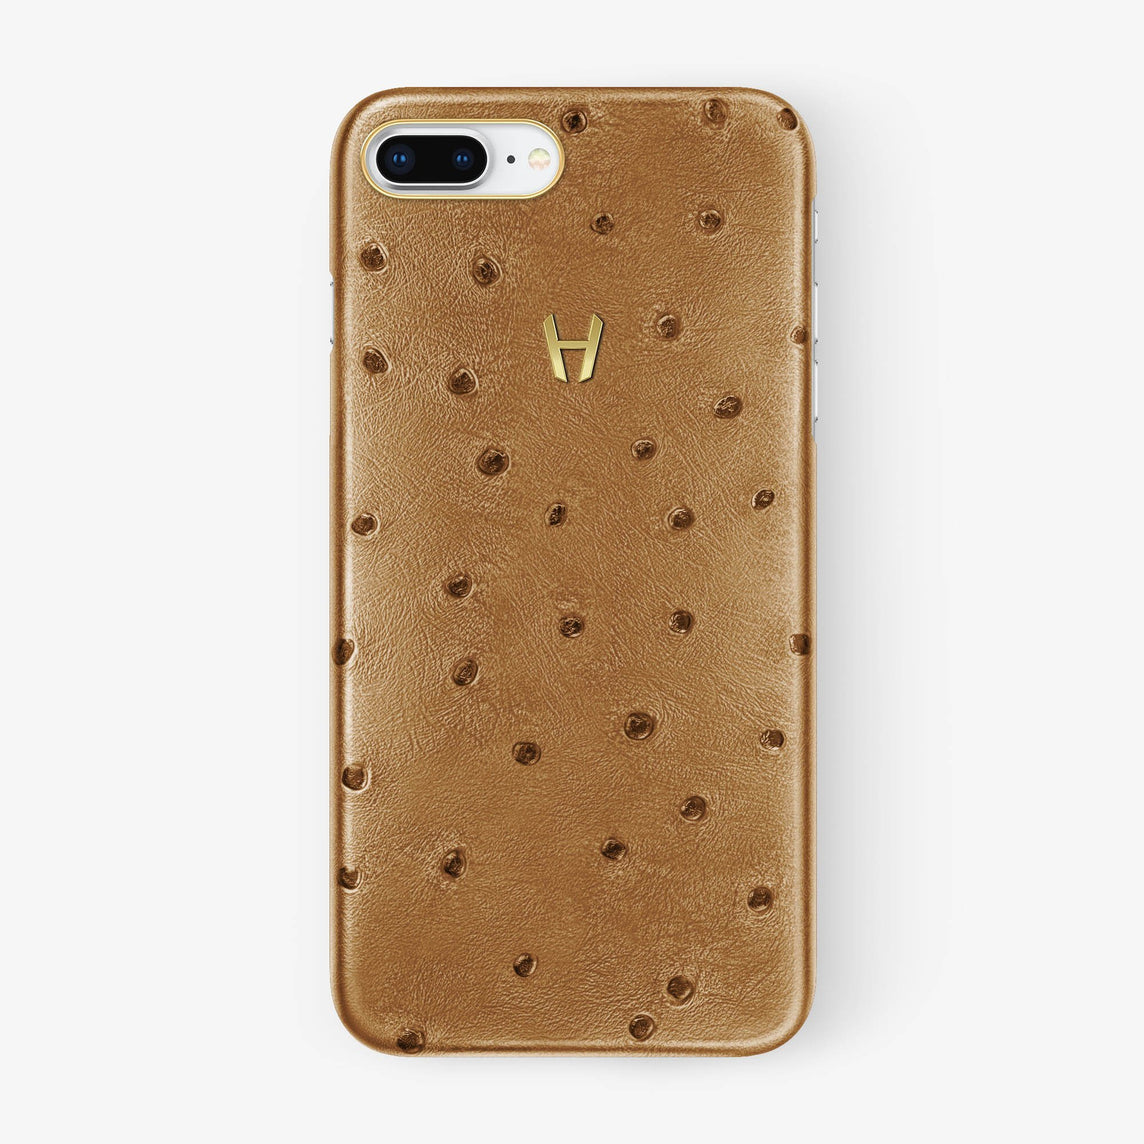 Chestnut Ostrich iPhone Case for iPhone 7/8 Plus finishing yellow gold - Hadoro Luxury Cases